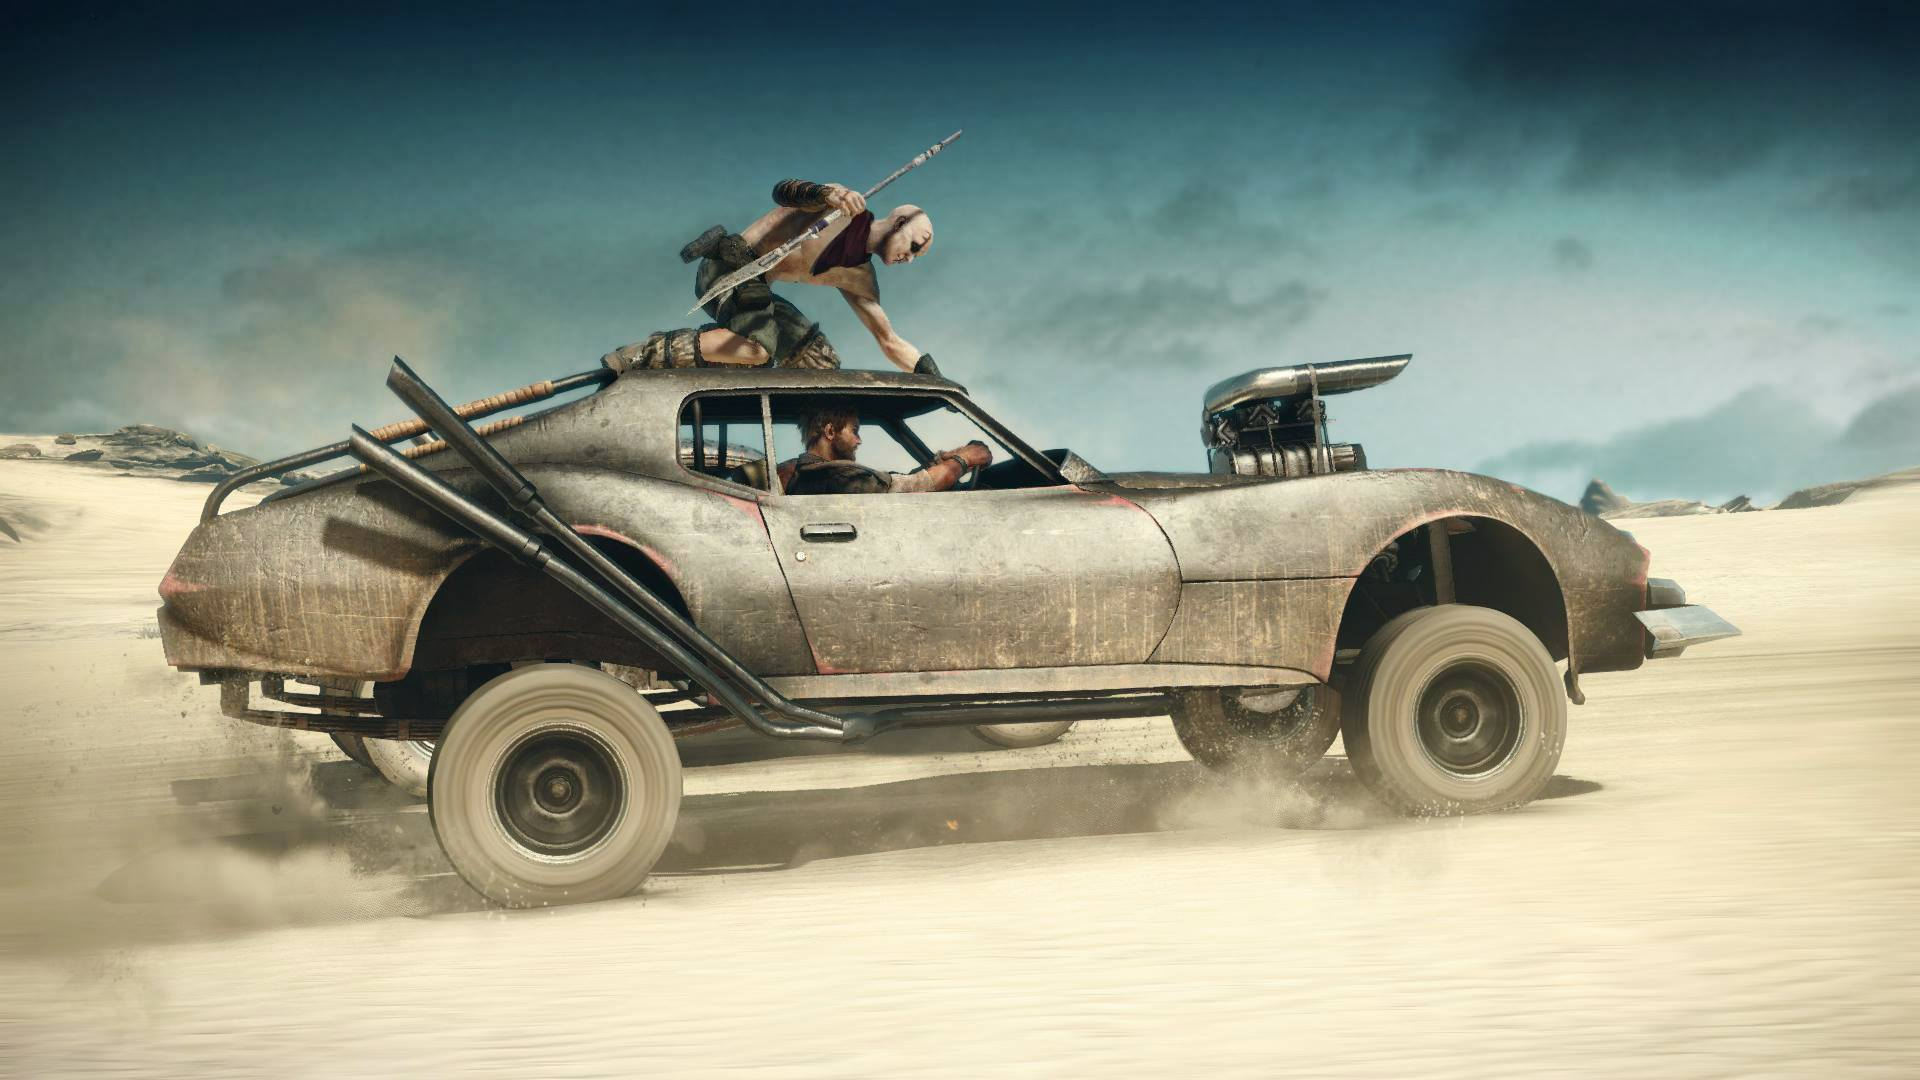 West Coast Corvette >> West Coast Customs Builds a Real Mad Max Car - autoevolution